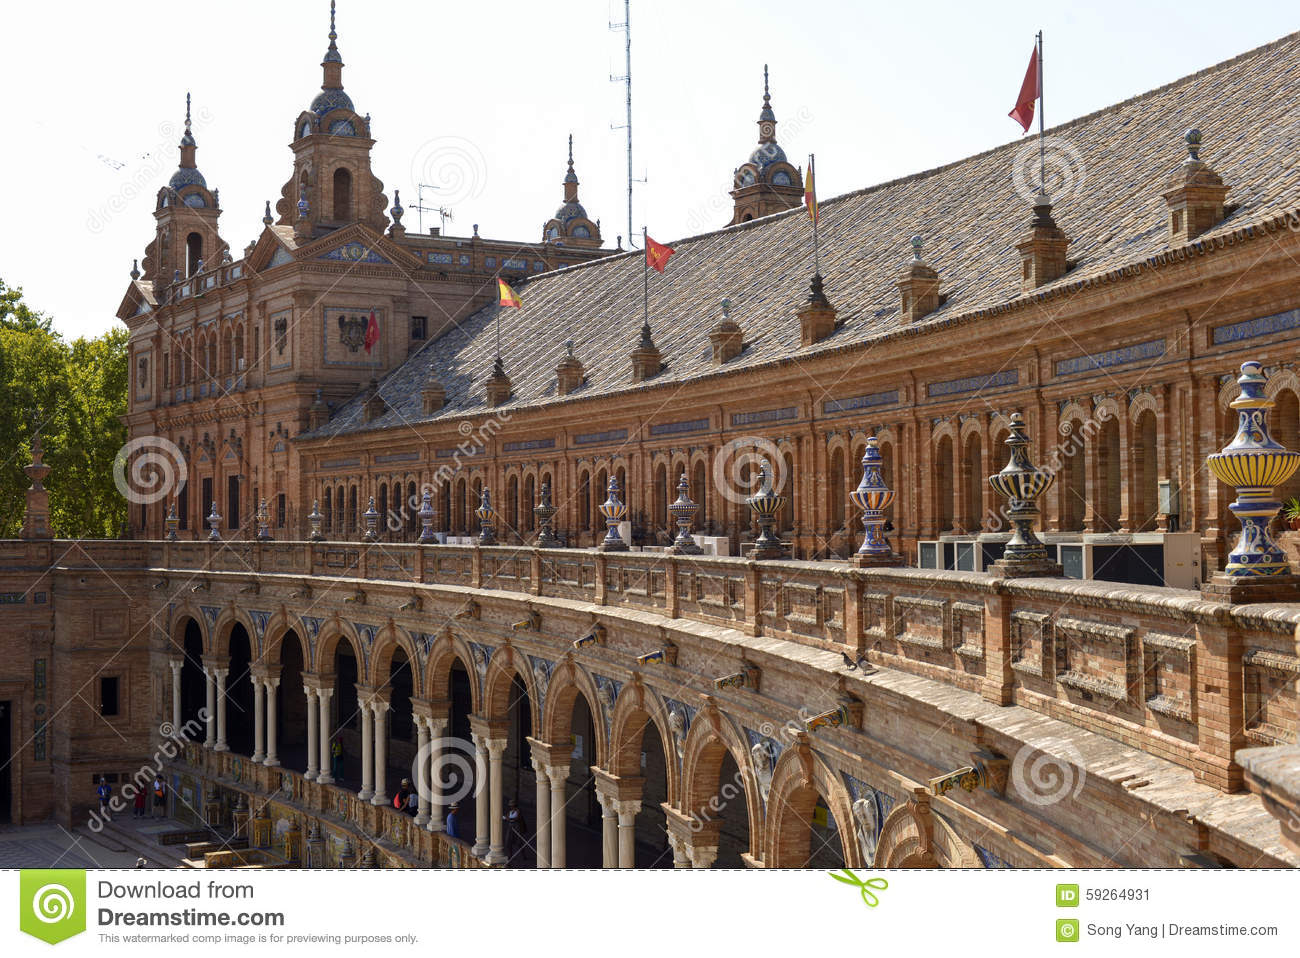 Famouse square of Spain in Seville, Spain